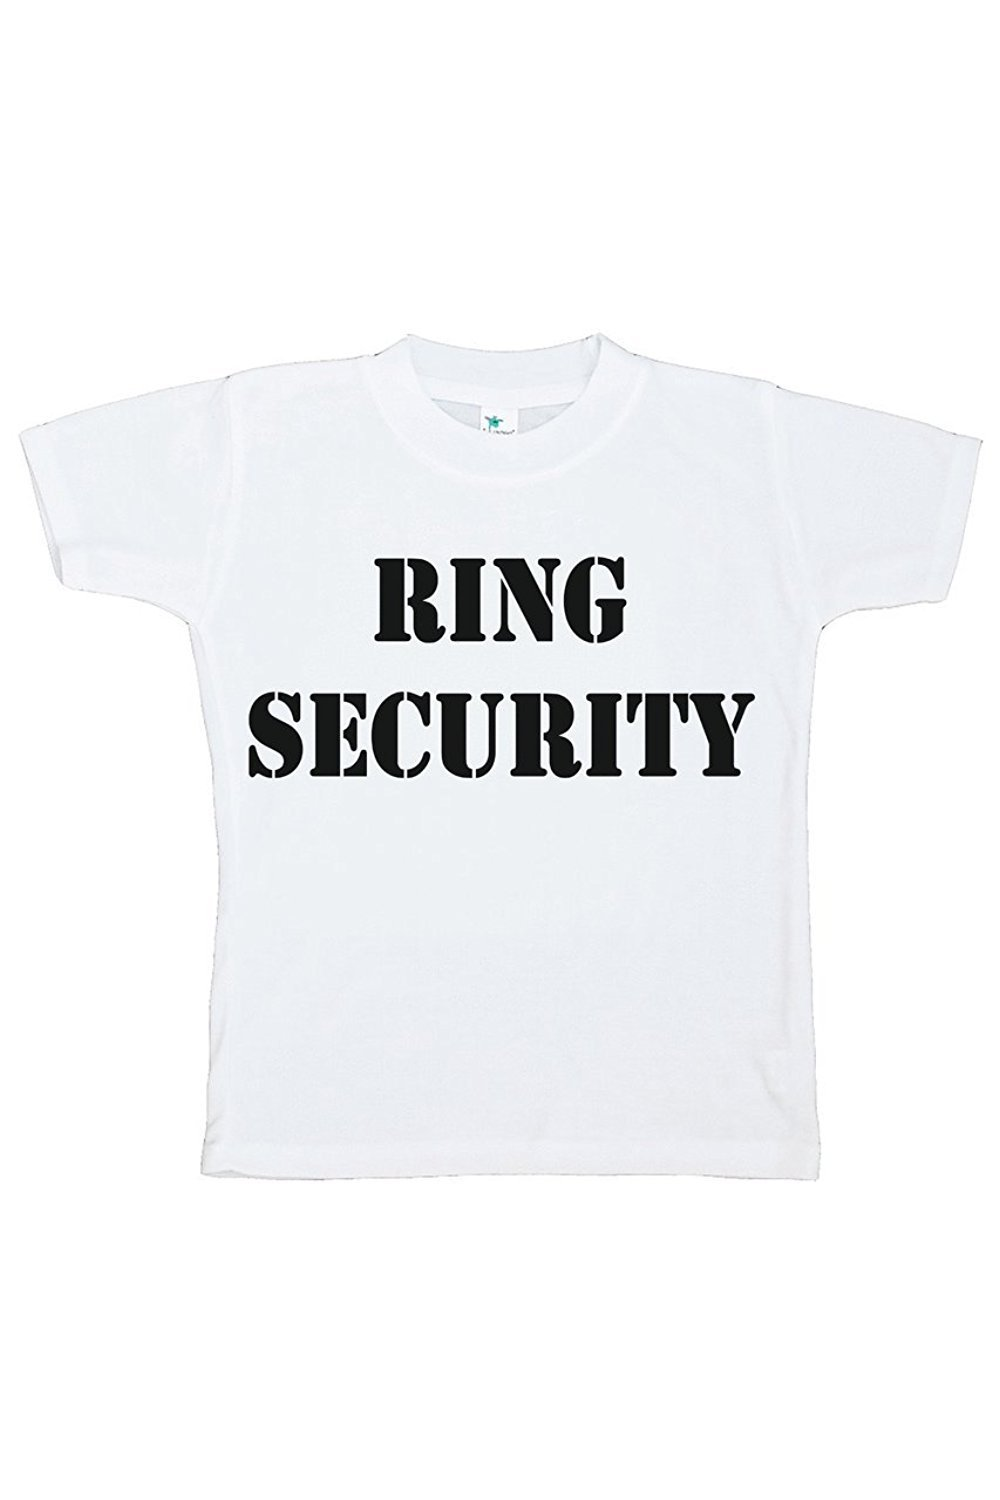 Custom Party Shop Toddler Boy's Ring Security Wedding T-shirt - 4T